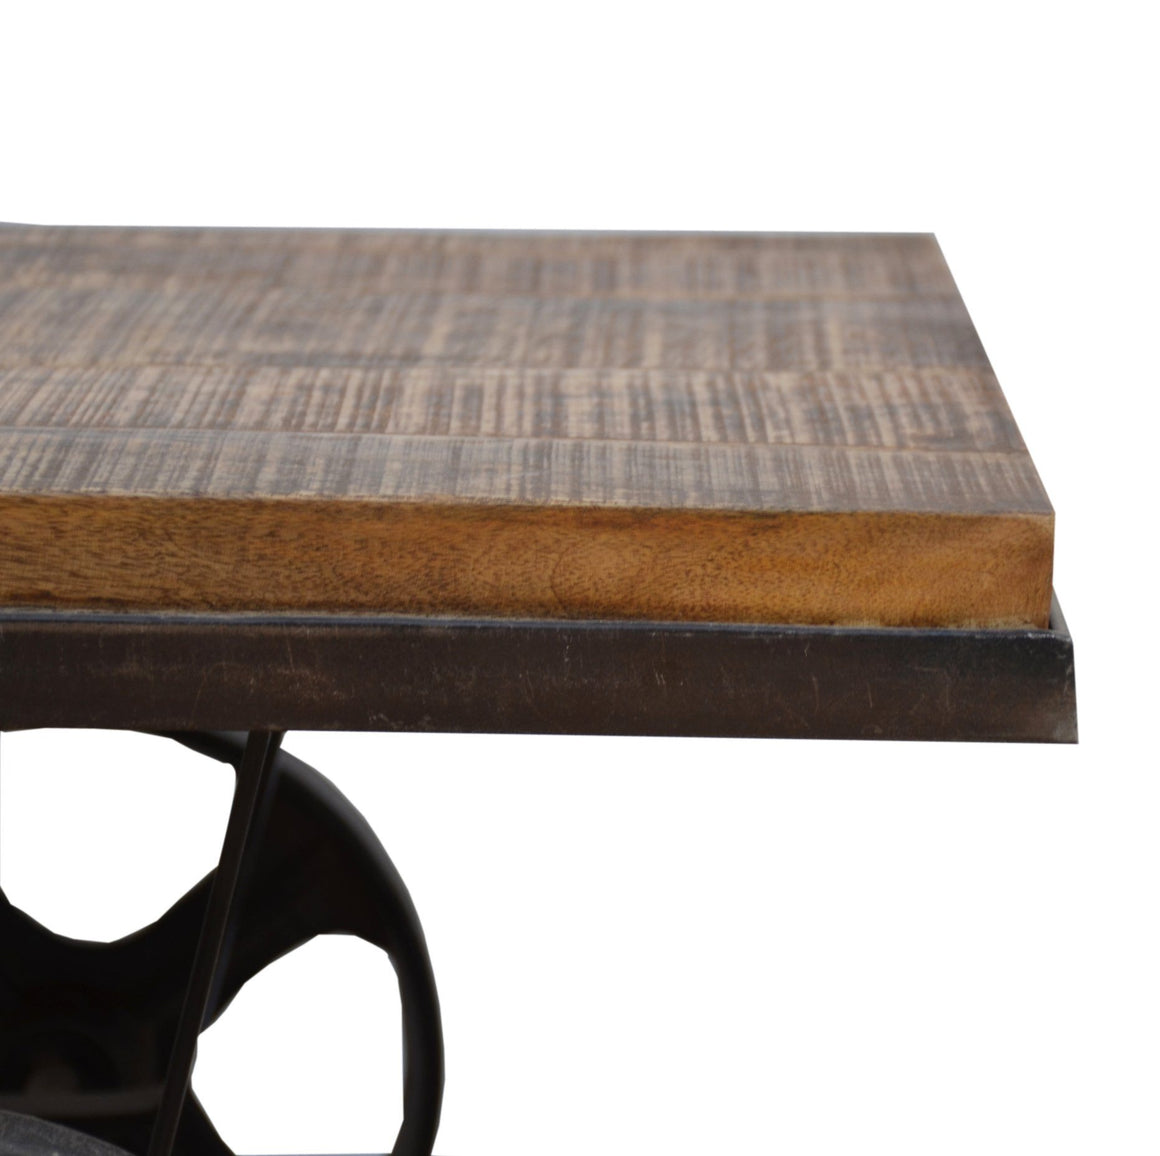 INDUSTRIAL COFFEE TABLE ON WHEELS Philbee Interiors